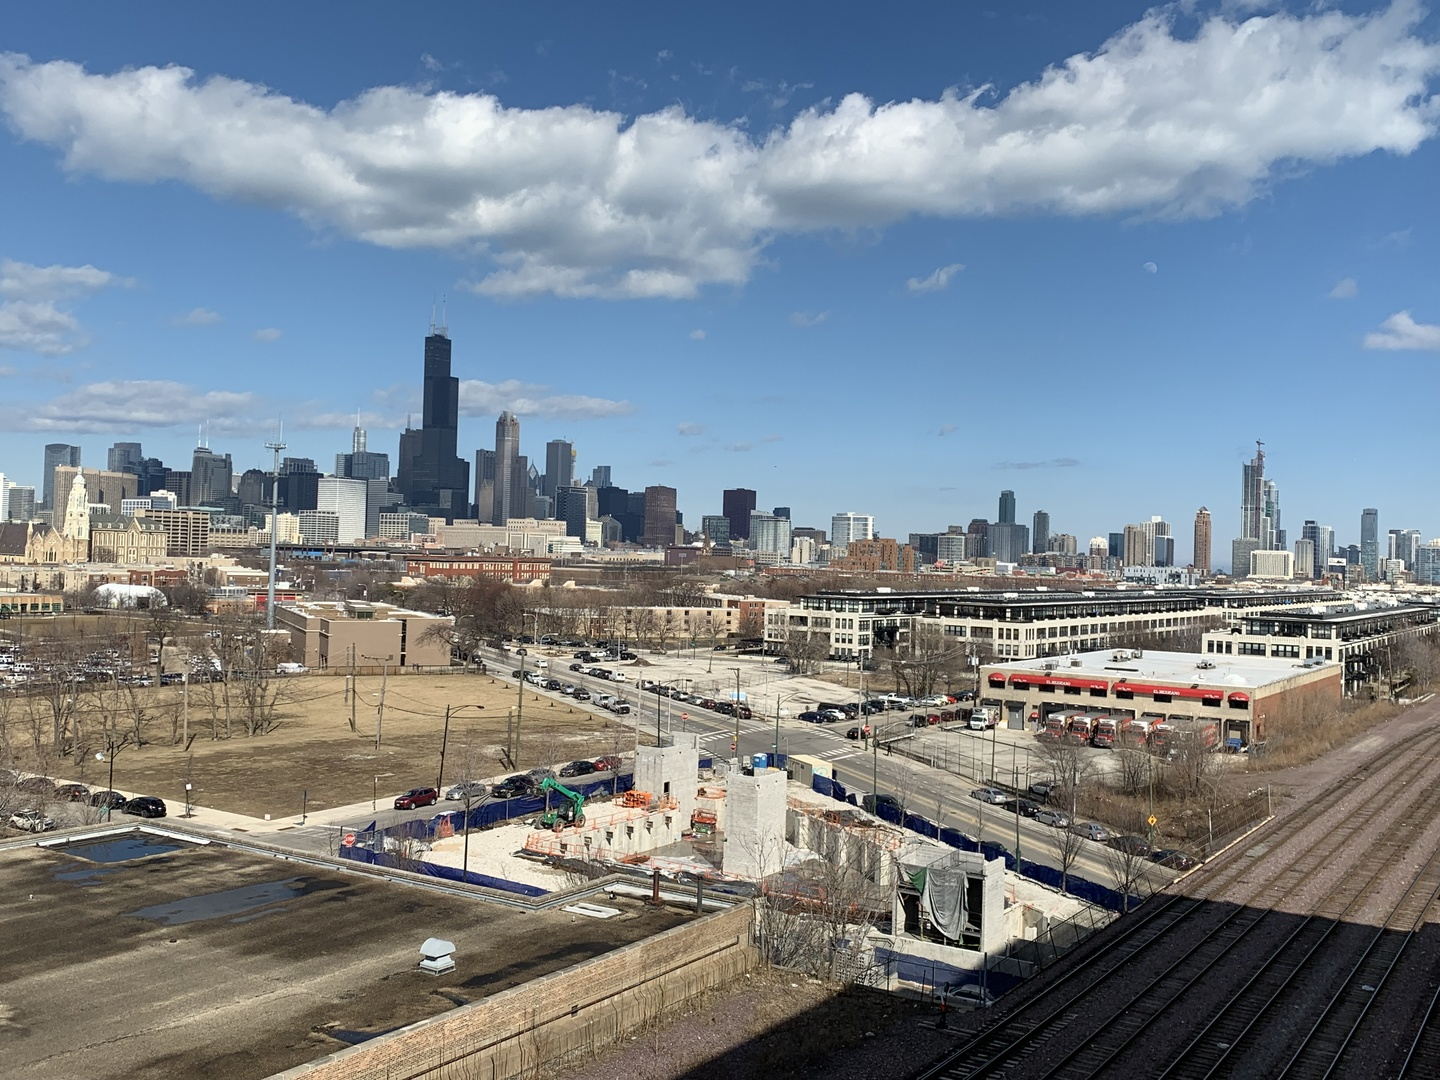 1550 South Blue Island 811, CHICAGO, Illinois, 60608